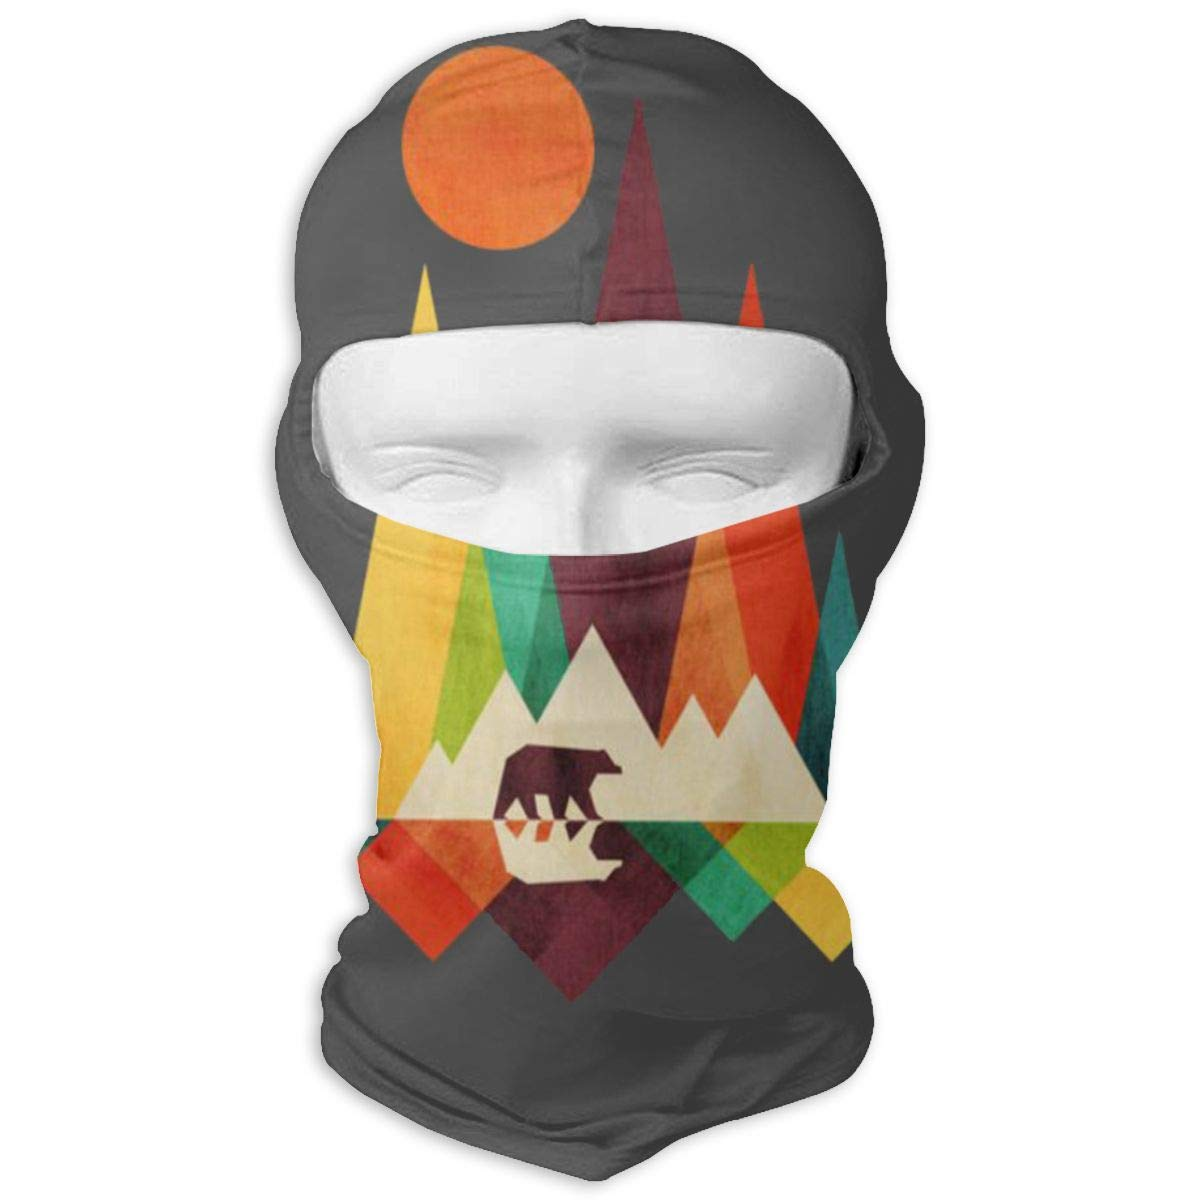 LaoJi Mountain Bear Winter Ski Mask Balaclava Hood - Wind-Resistant Face Mask